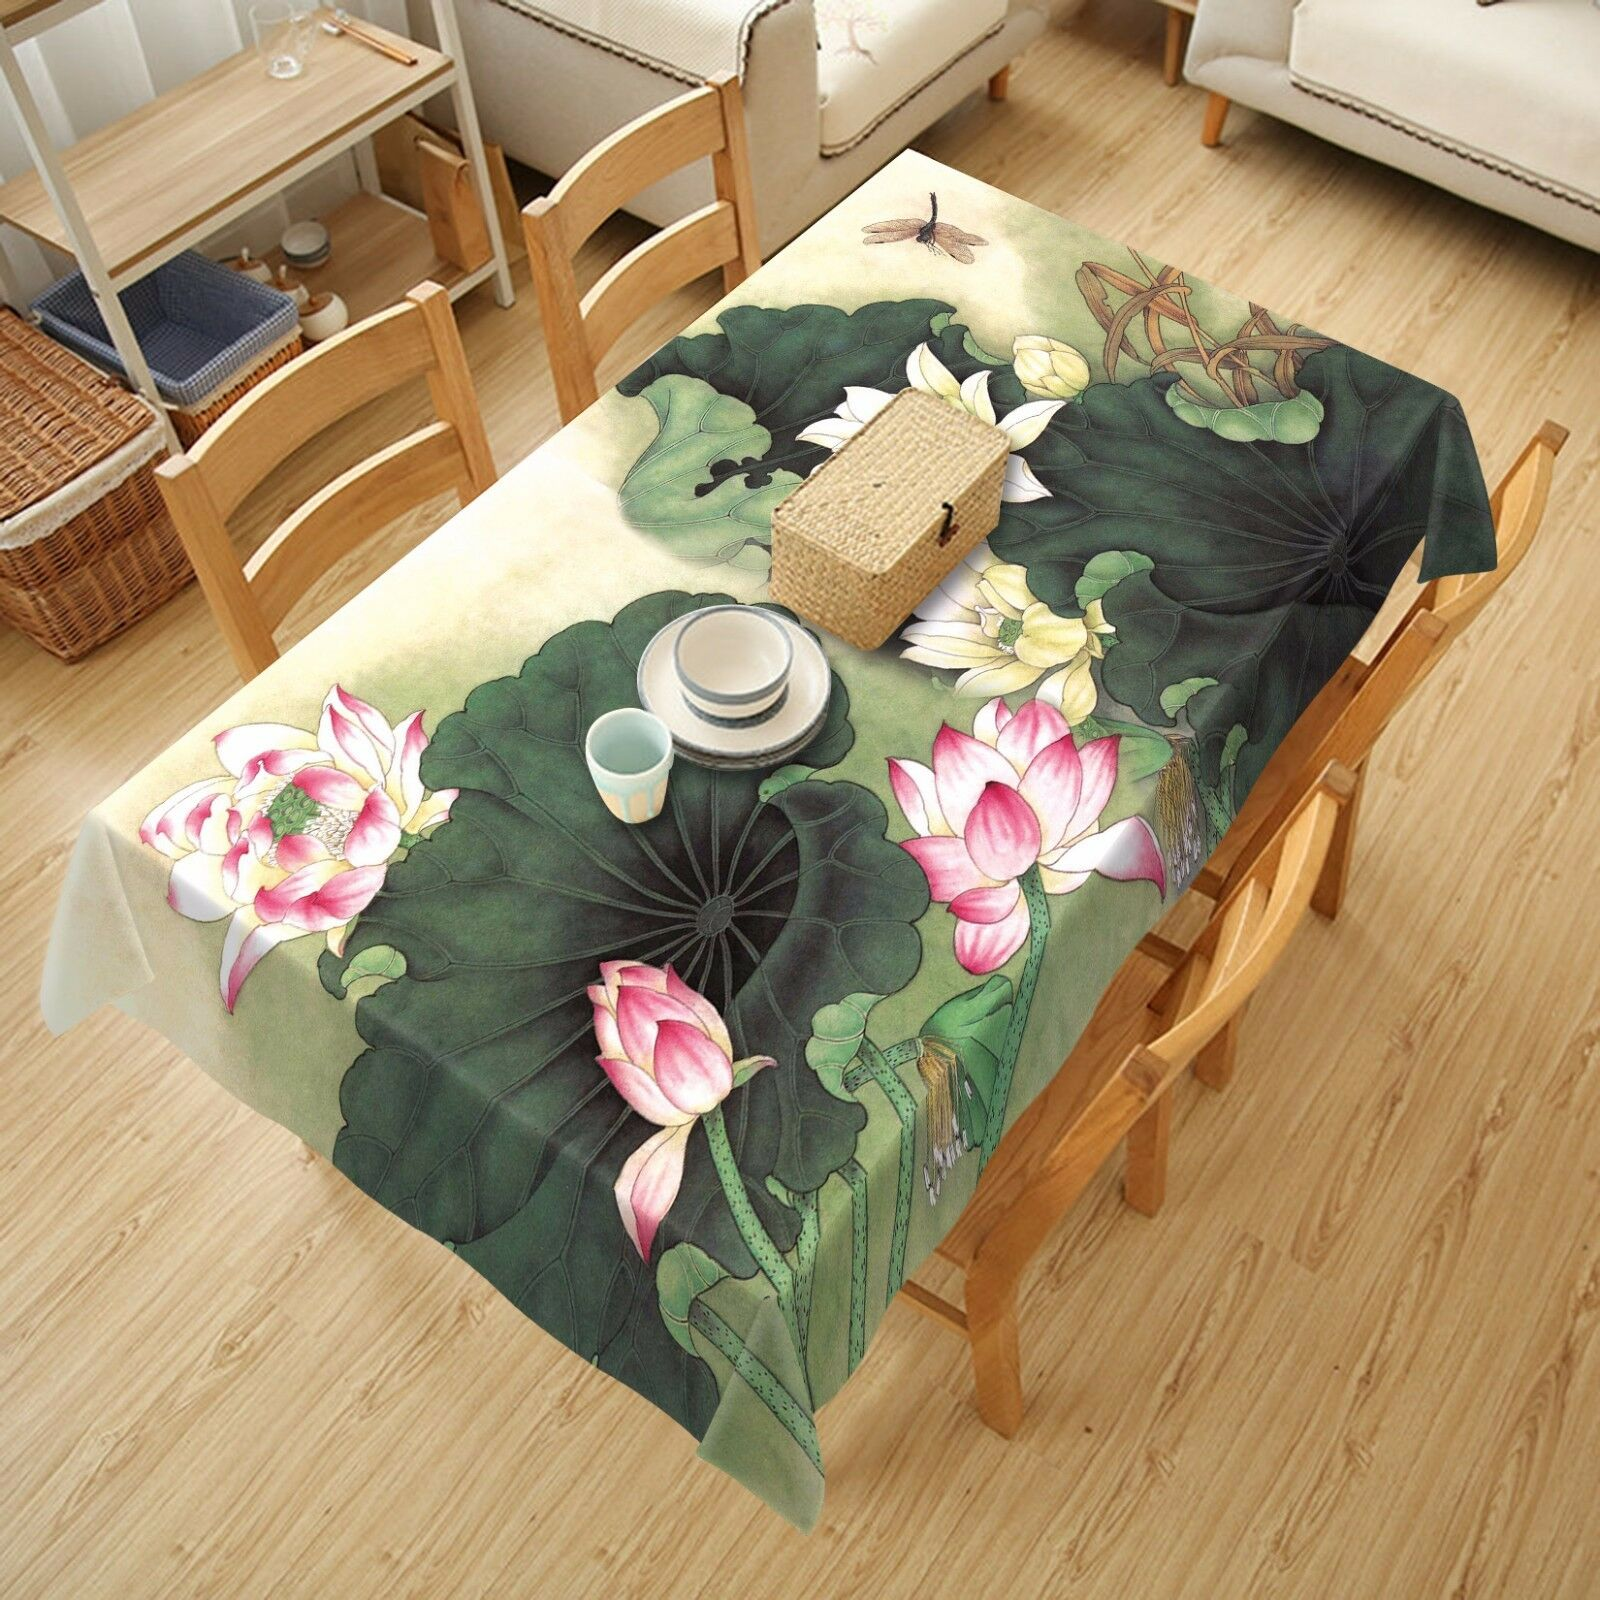 3D Lotus leaf9 Tablecloth Table Cover Cloth Birthday Party Event AJ WALLPAPER UK